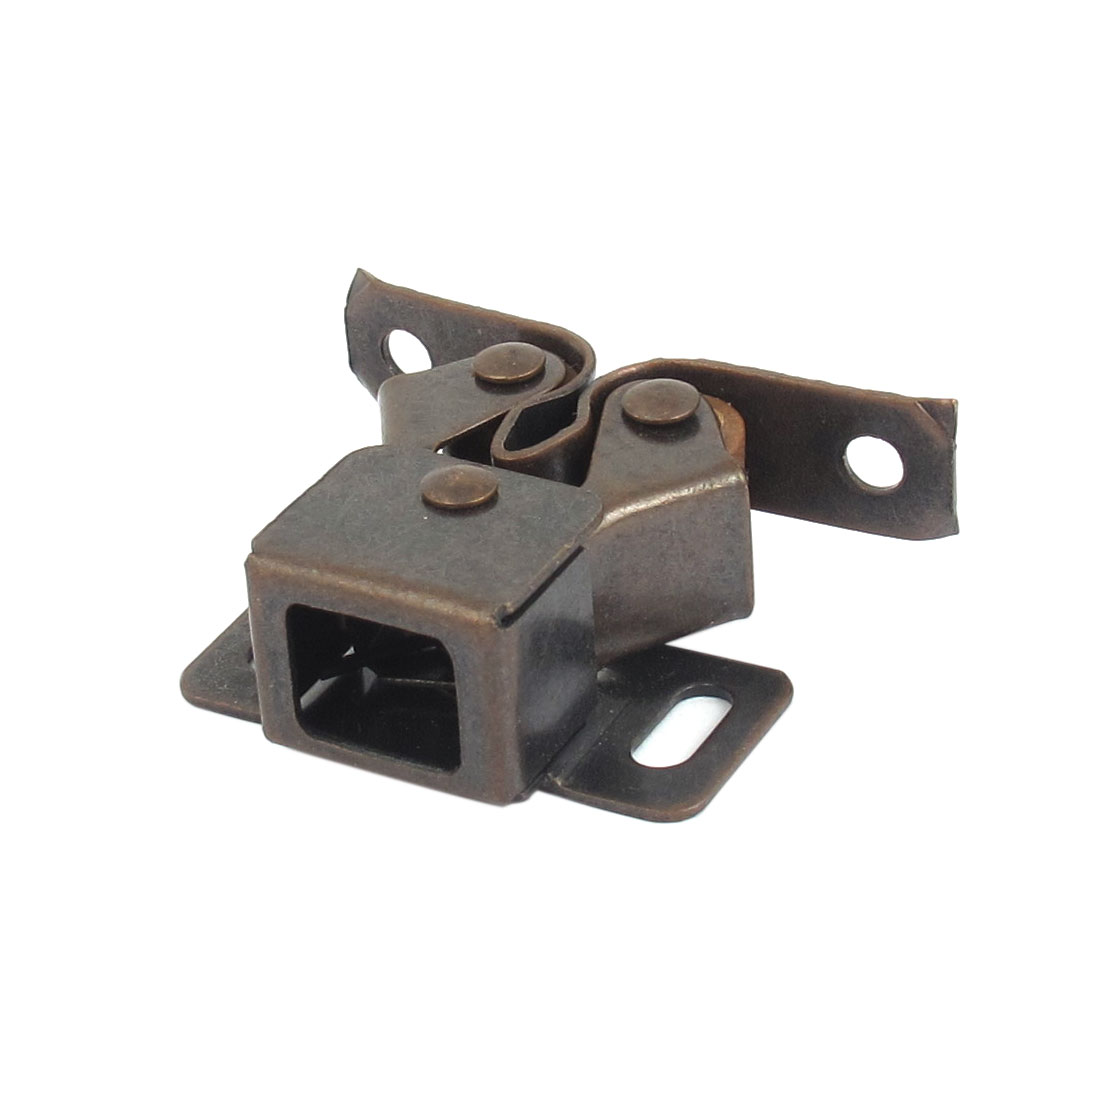 Cupboard Cabinet Caravan Door Metal Double Roller Catch Latch Hardware